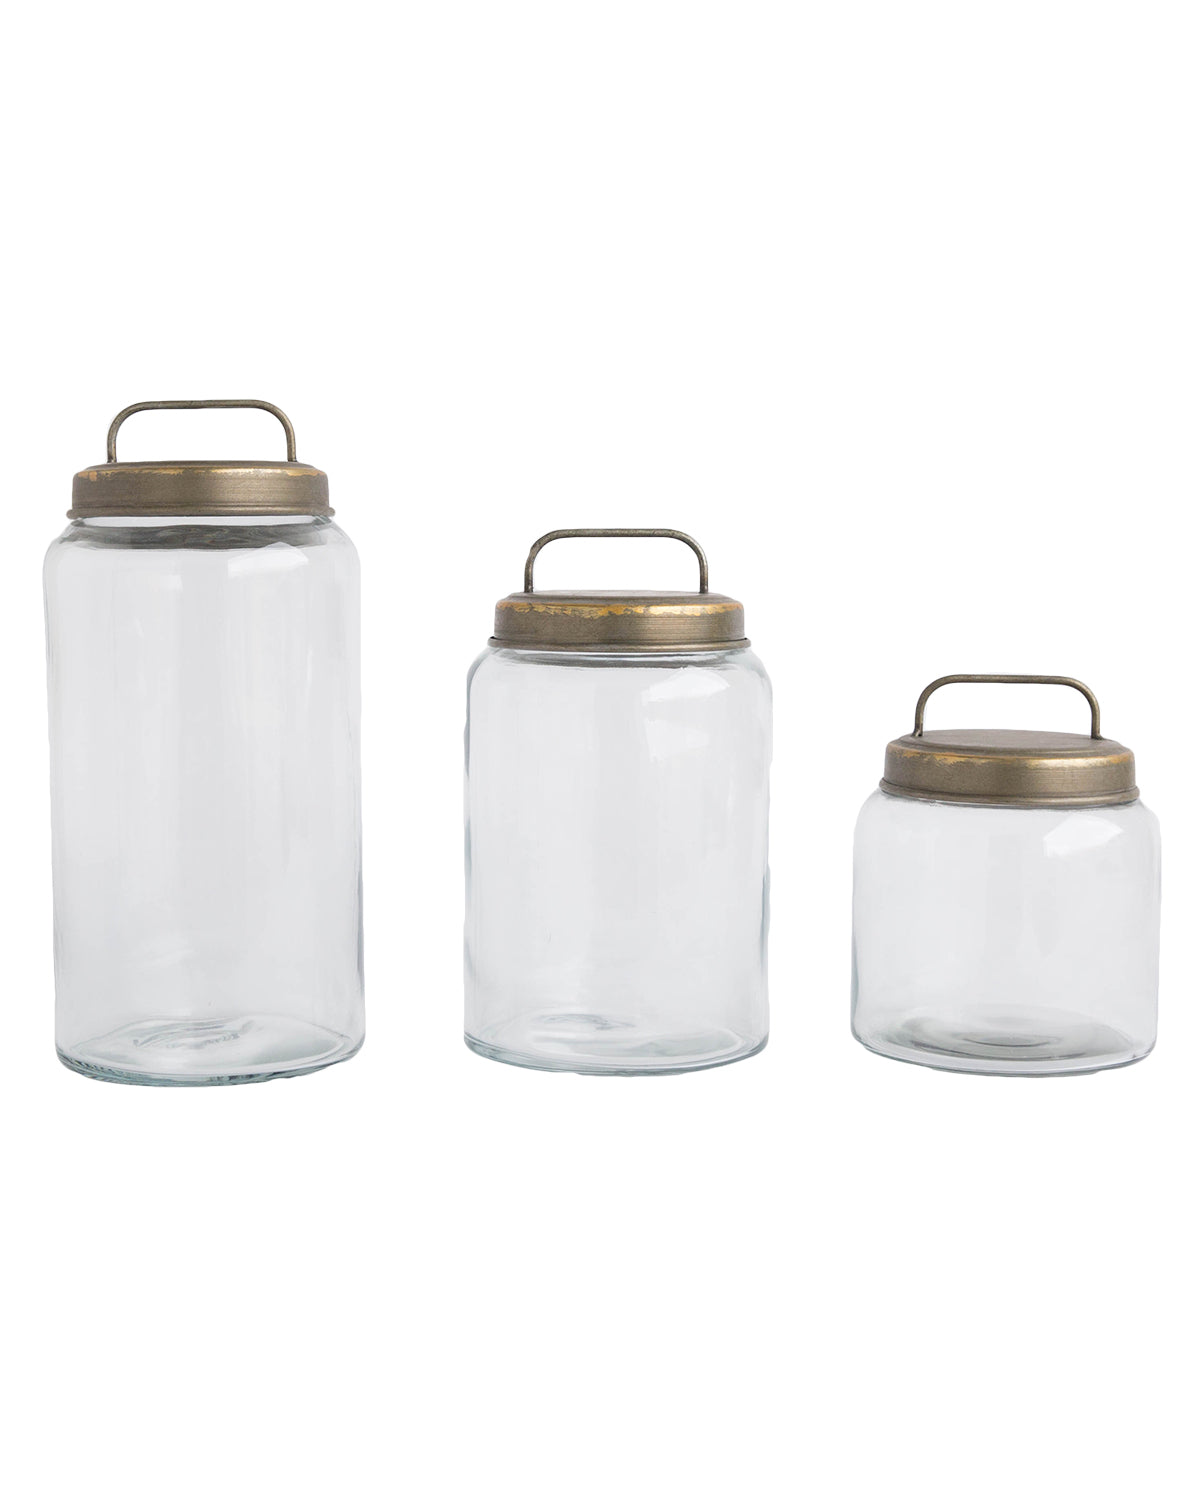 Galvanized Lidded Canisters